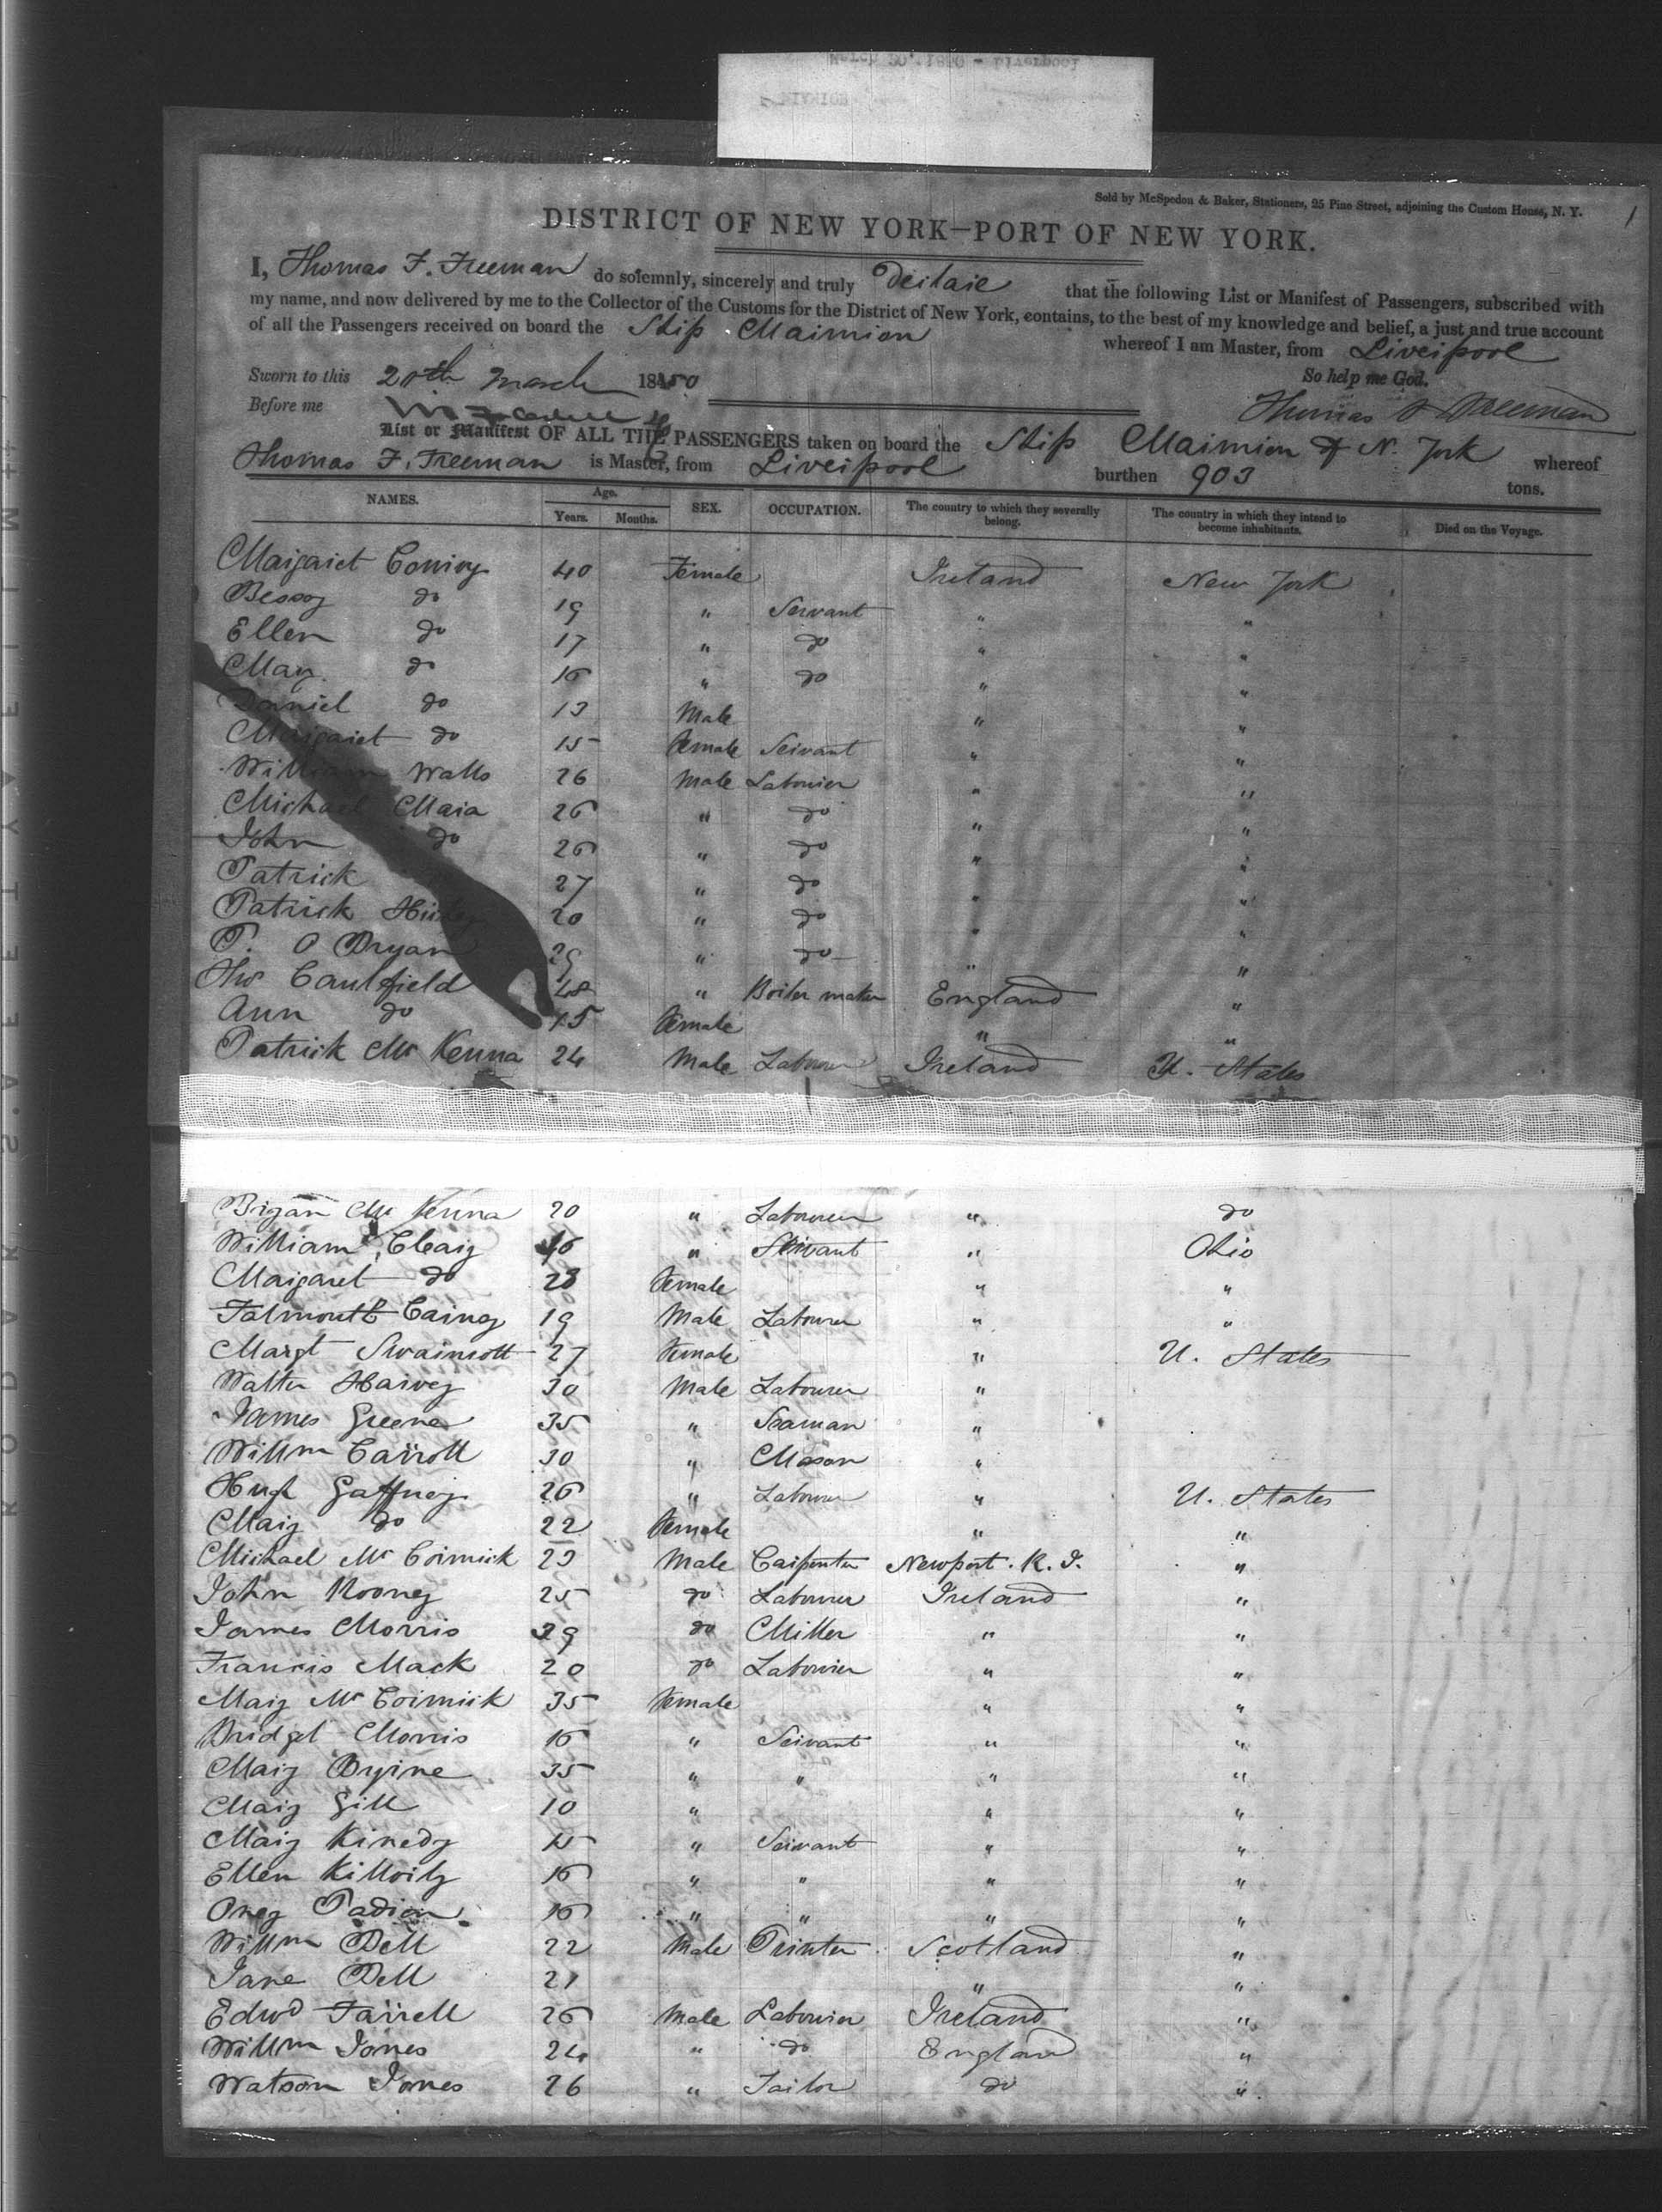 Expanded Ellis Island Passenger Arrival Records 1820-1957